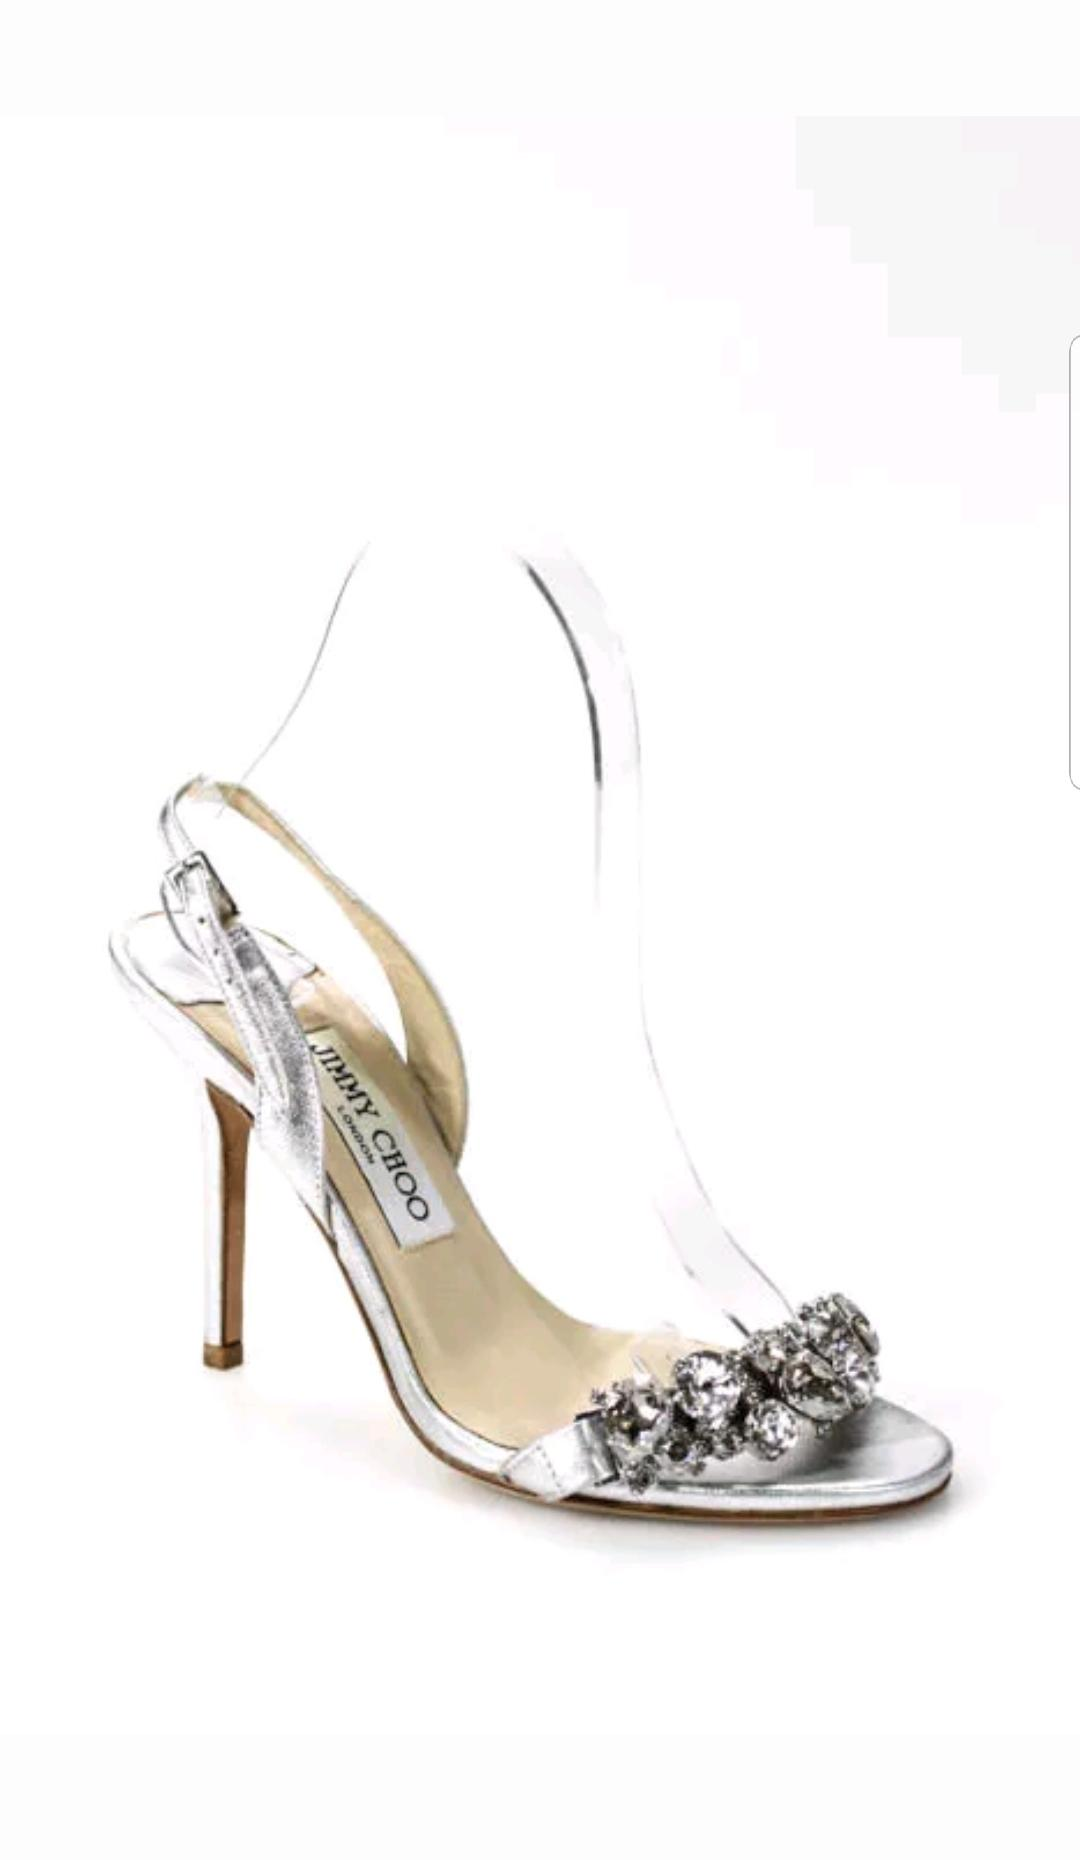 1aca03b53037 where can i buy jimmy choo rhinestone pumps 595ce 8b5ad